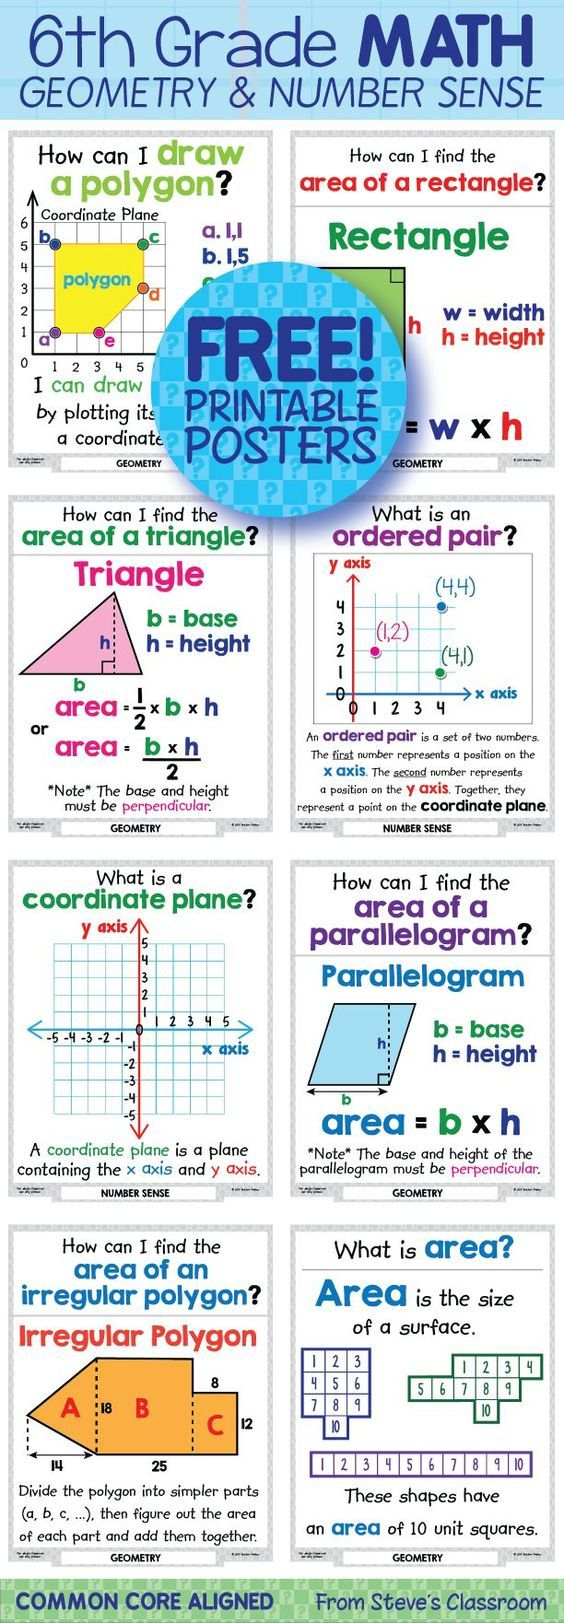 worksheet Coordinate Plane Printable 17 best ideas about plane math on pinterest coordinate geometry free printable posters area of a triangle and draw a